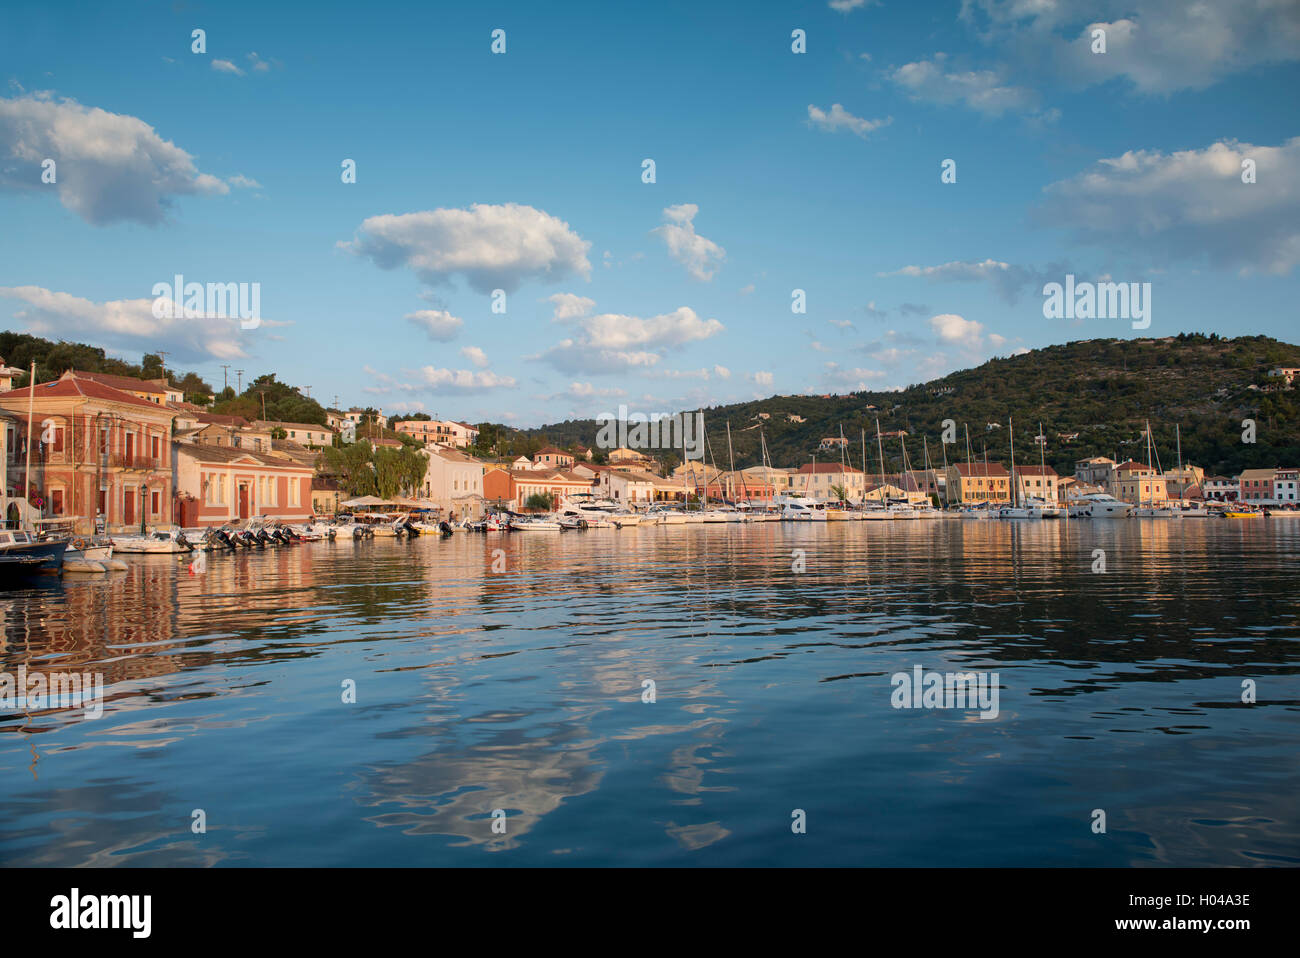 The picturesque harbour of Gaios at sunrise on Paxos, The Ionian Islands, The Greek Islands, Greece, Europe - Stock Image